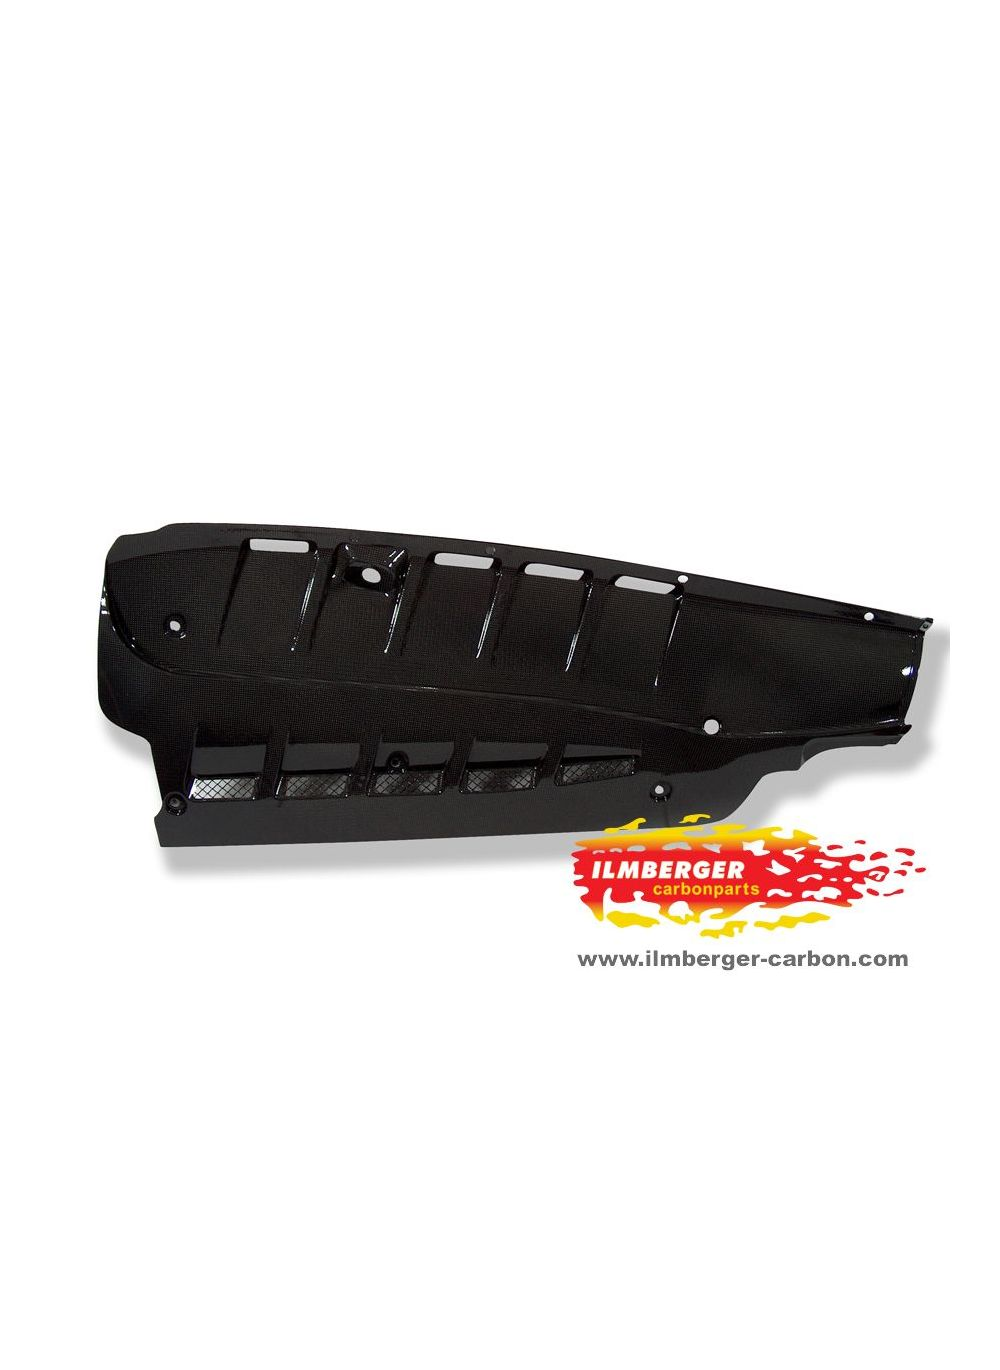 Engine Compartment Covers F430 Coupe G Amp G Shop